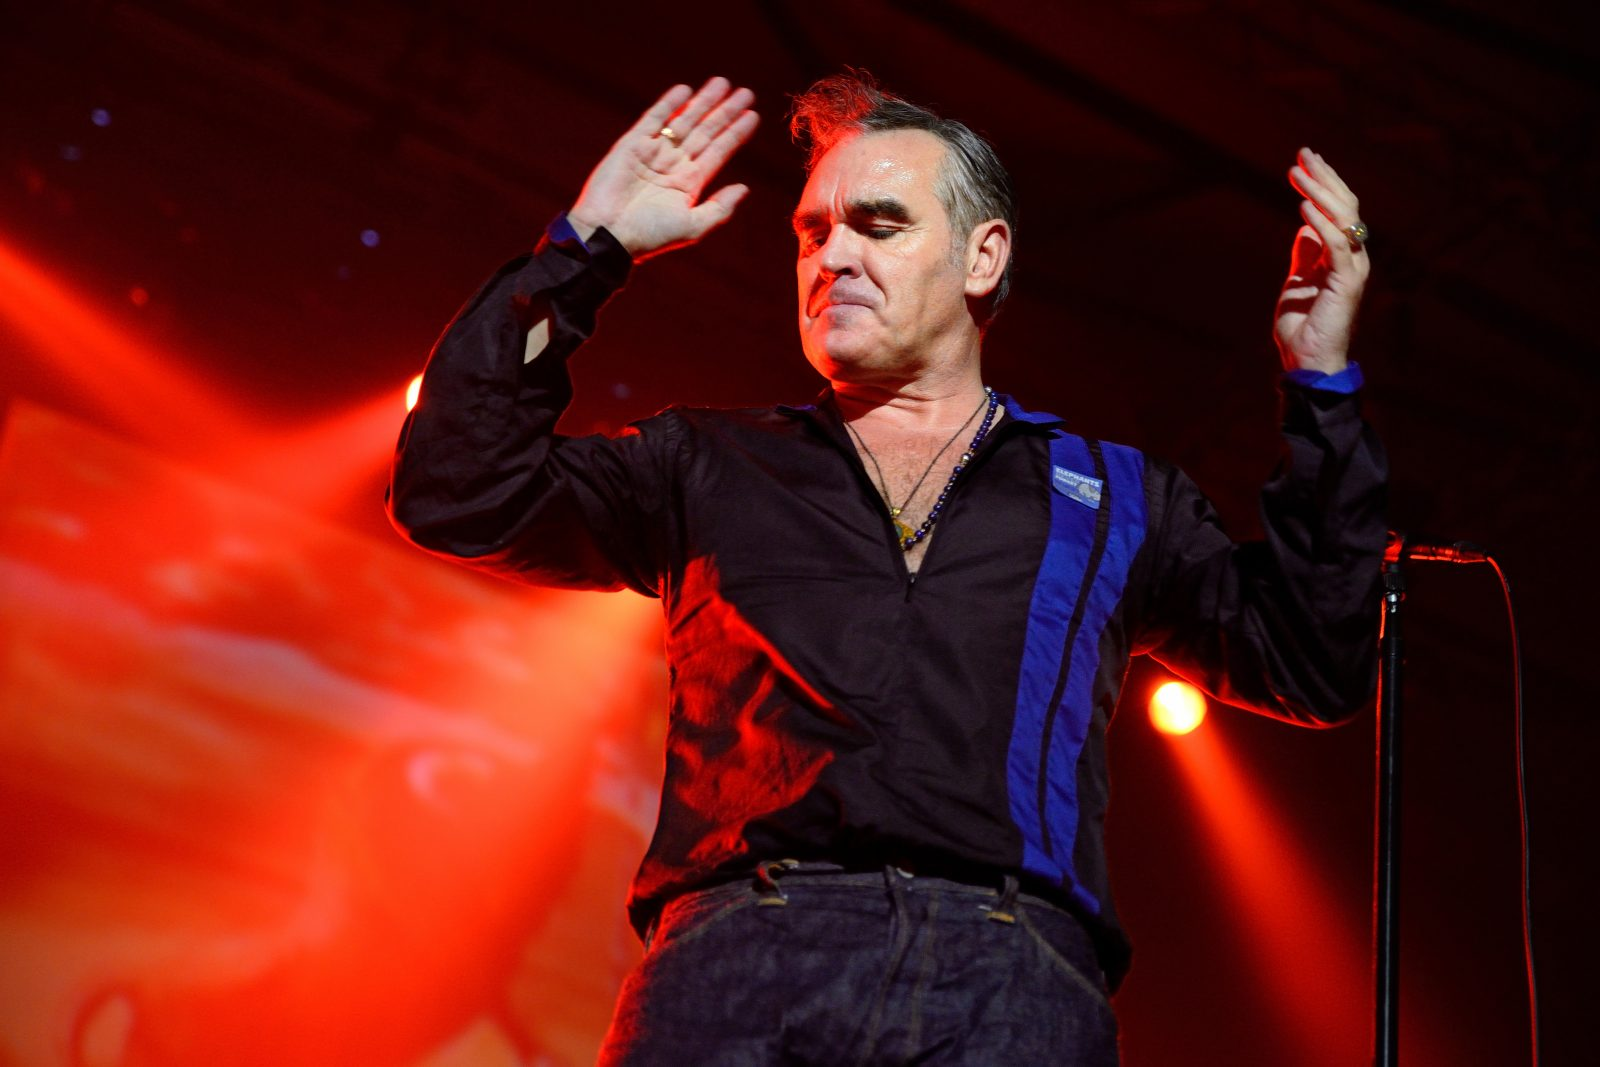 Morrissey only says controversial shit when there's tickets or an album to sell